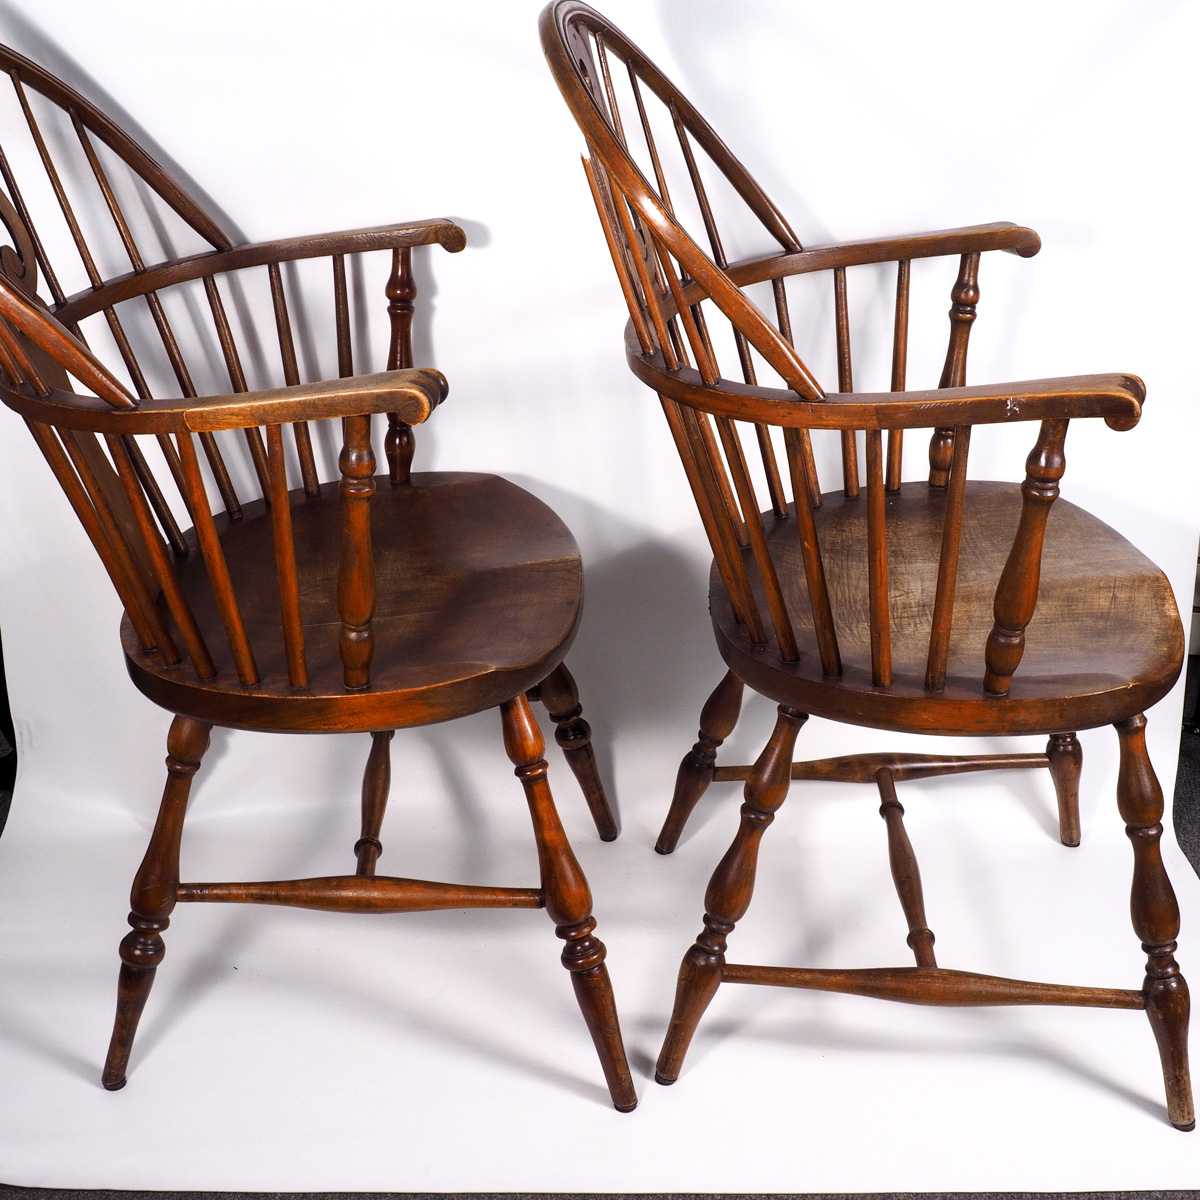 windsor style chairs revolving chair adjustment karpen brothers ebth